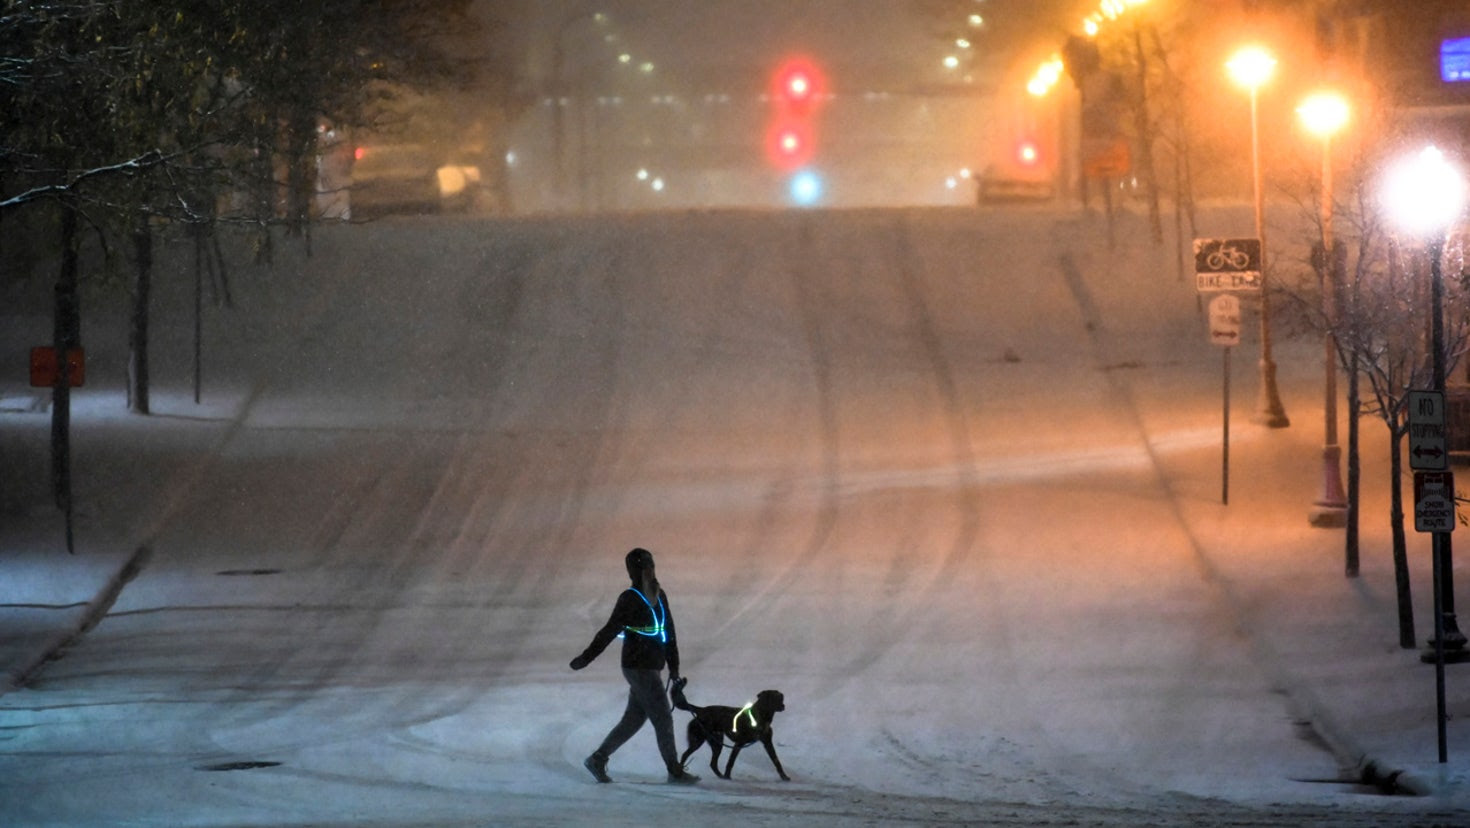 A potent storm system leaves many without power in the Midwest